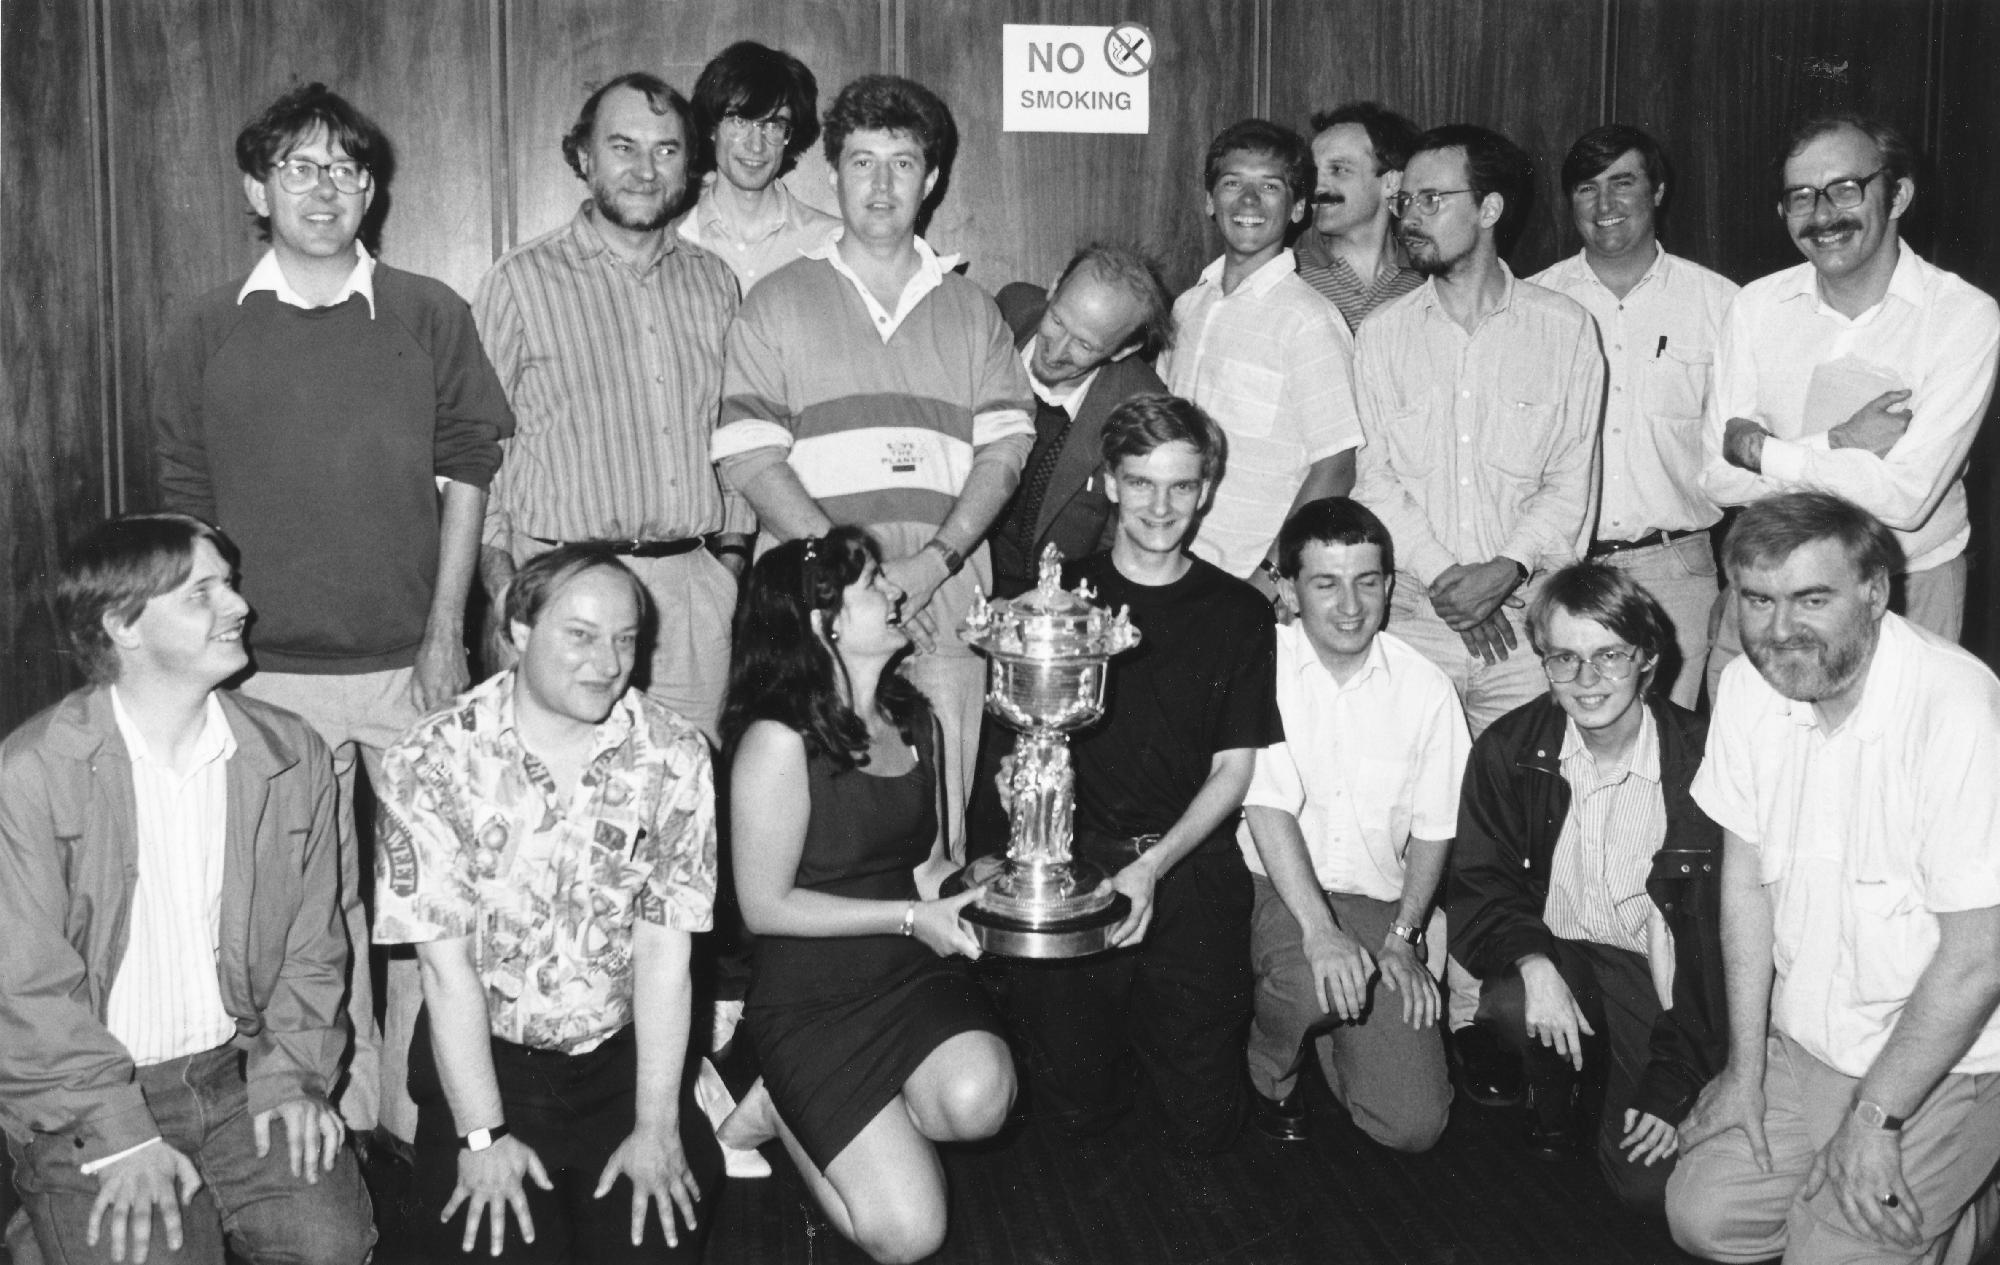 Lawrence Cooper (centre with trophy) being presented with 1992 BCF Counties Championship trophy by WIM Cathy Forbes. Others in the group include Michael Gough, Alan A Smith, Gerald Acey, Mike P Townsend, Malcolm Armstrong, Martin Costley, Alan Crombleholme, Graeme N Buckley, Paul Wallace, Mark A . Wheeler, Dave Carless, Darren P Wheeler, Keith Thompson, Ralph MA Allen and Graham Smith